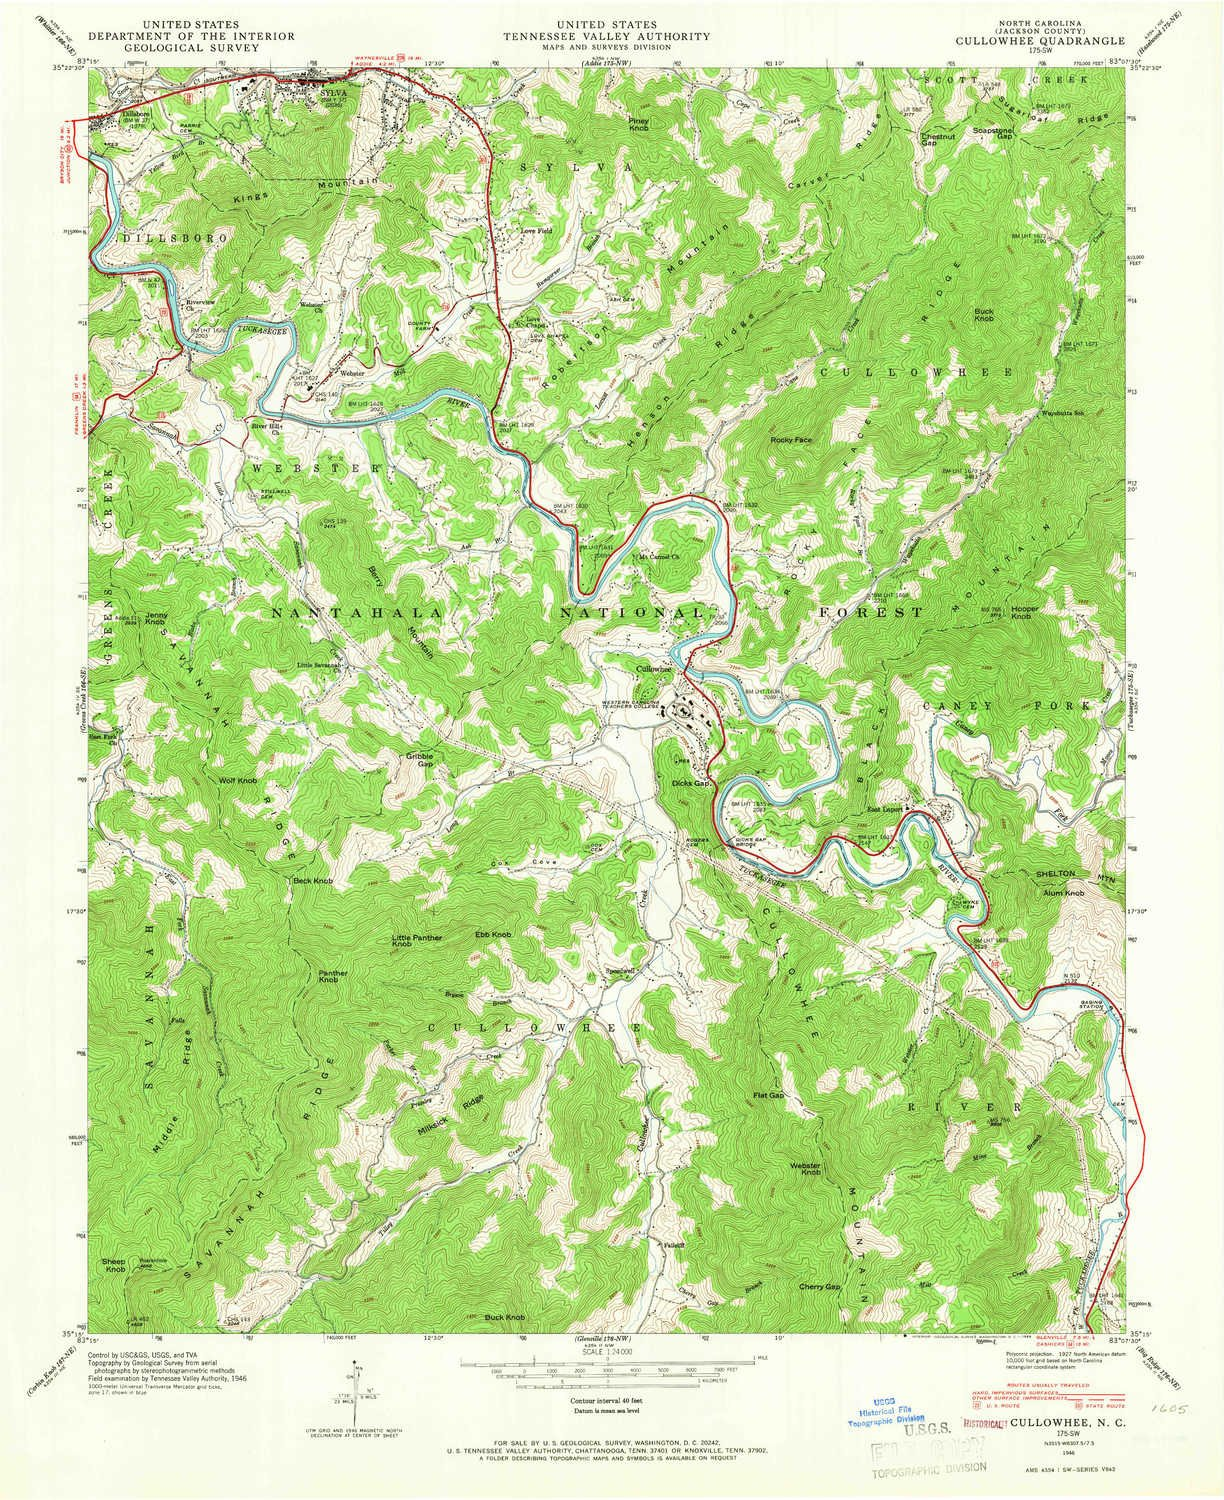 Topography Map Of Us.Amazon Com Cullowhee Nc Topo Map 1 24000 Scale 7 5 X 7 5 Minute